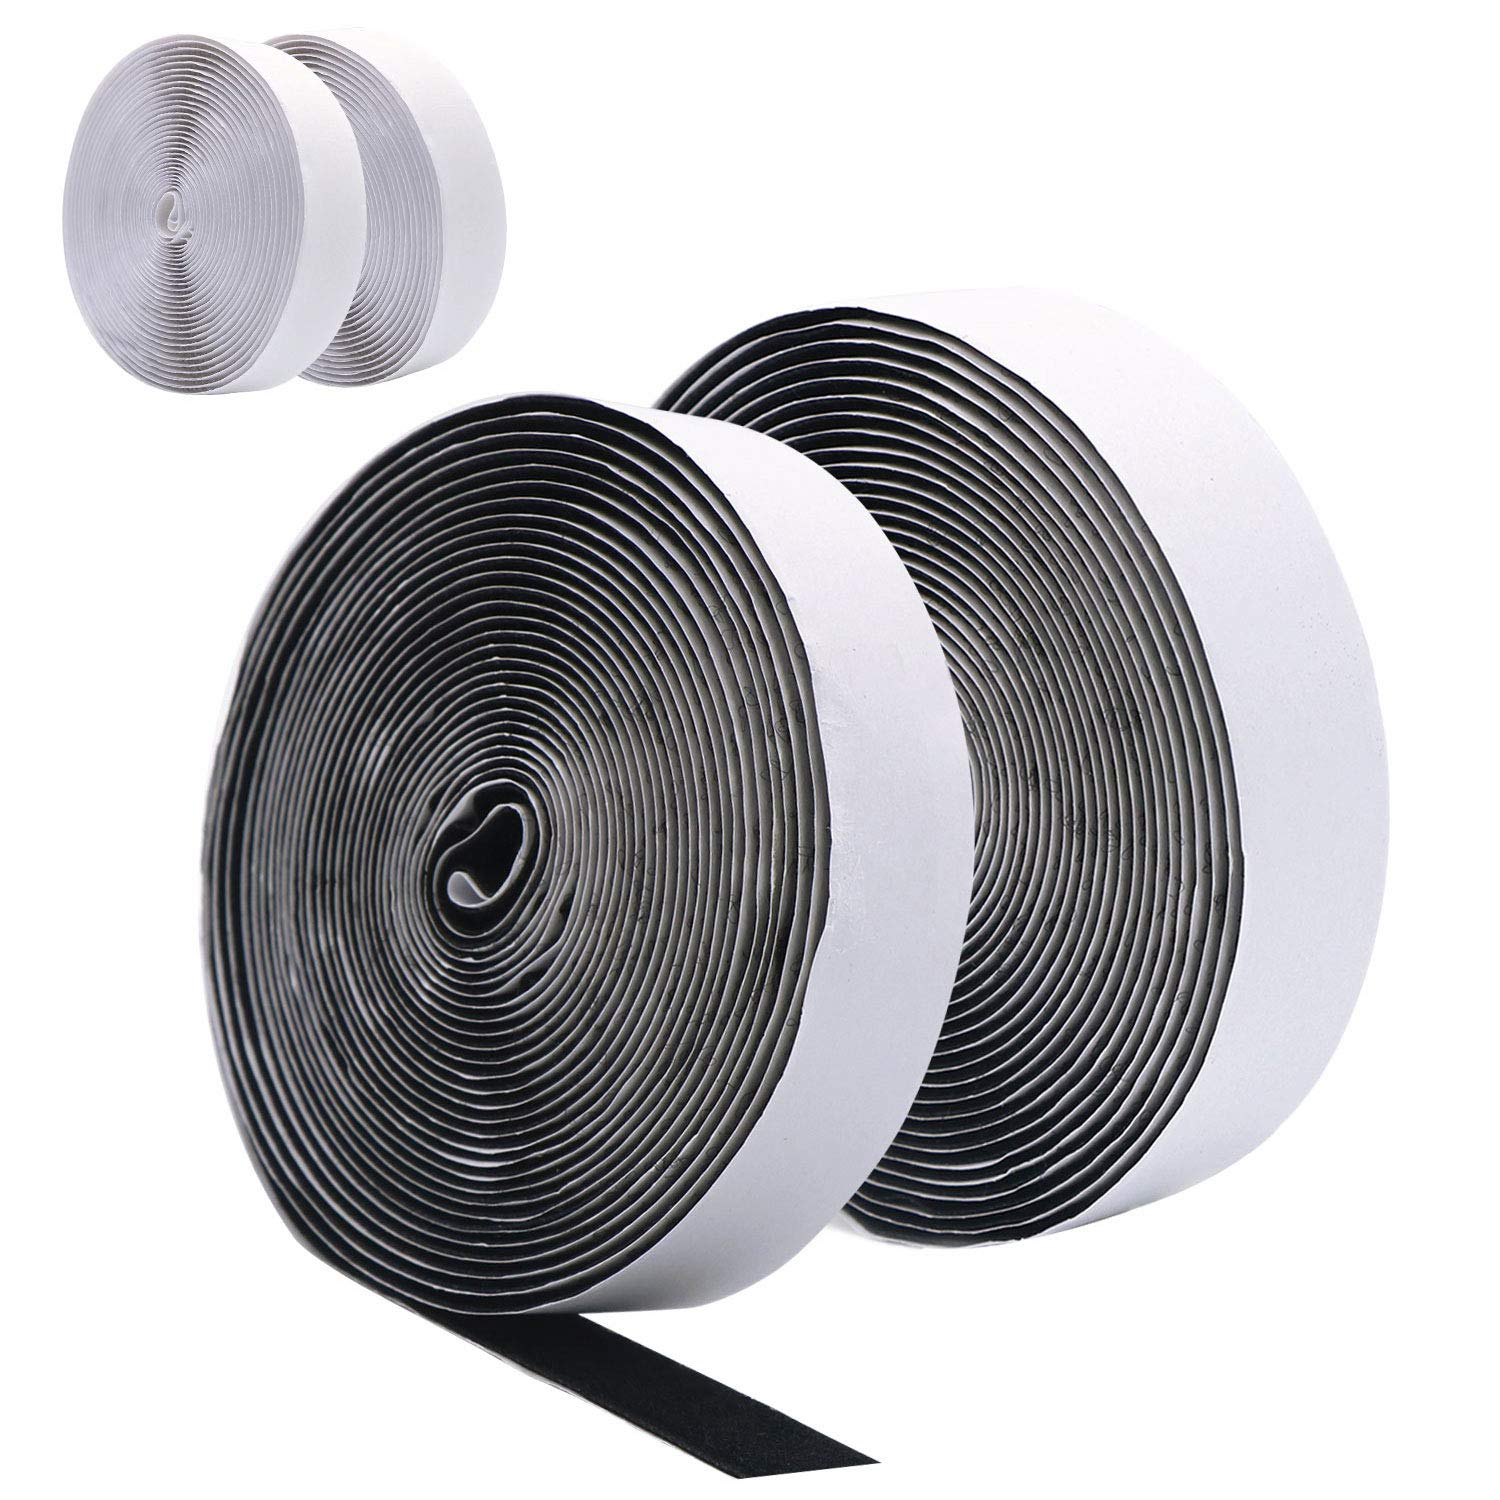 10M(4 Rolls 5M) Self Adhesive Hook and Loop Strip Tape by DigHealth, Double Sided Sticky Back Tape, Fabric Fastening Tapes, 20mm Wide Hook and Loop Fastener (2 Rolls in Black and 2 Rolls in White) YTM